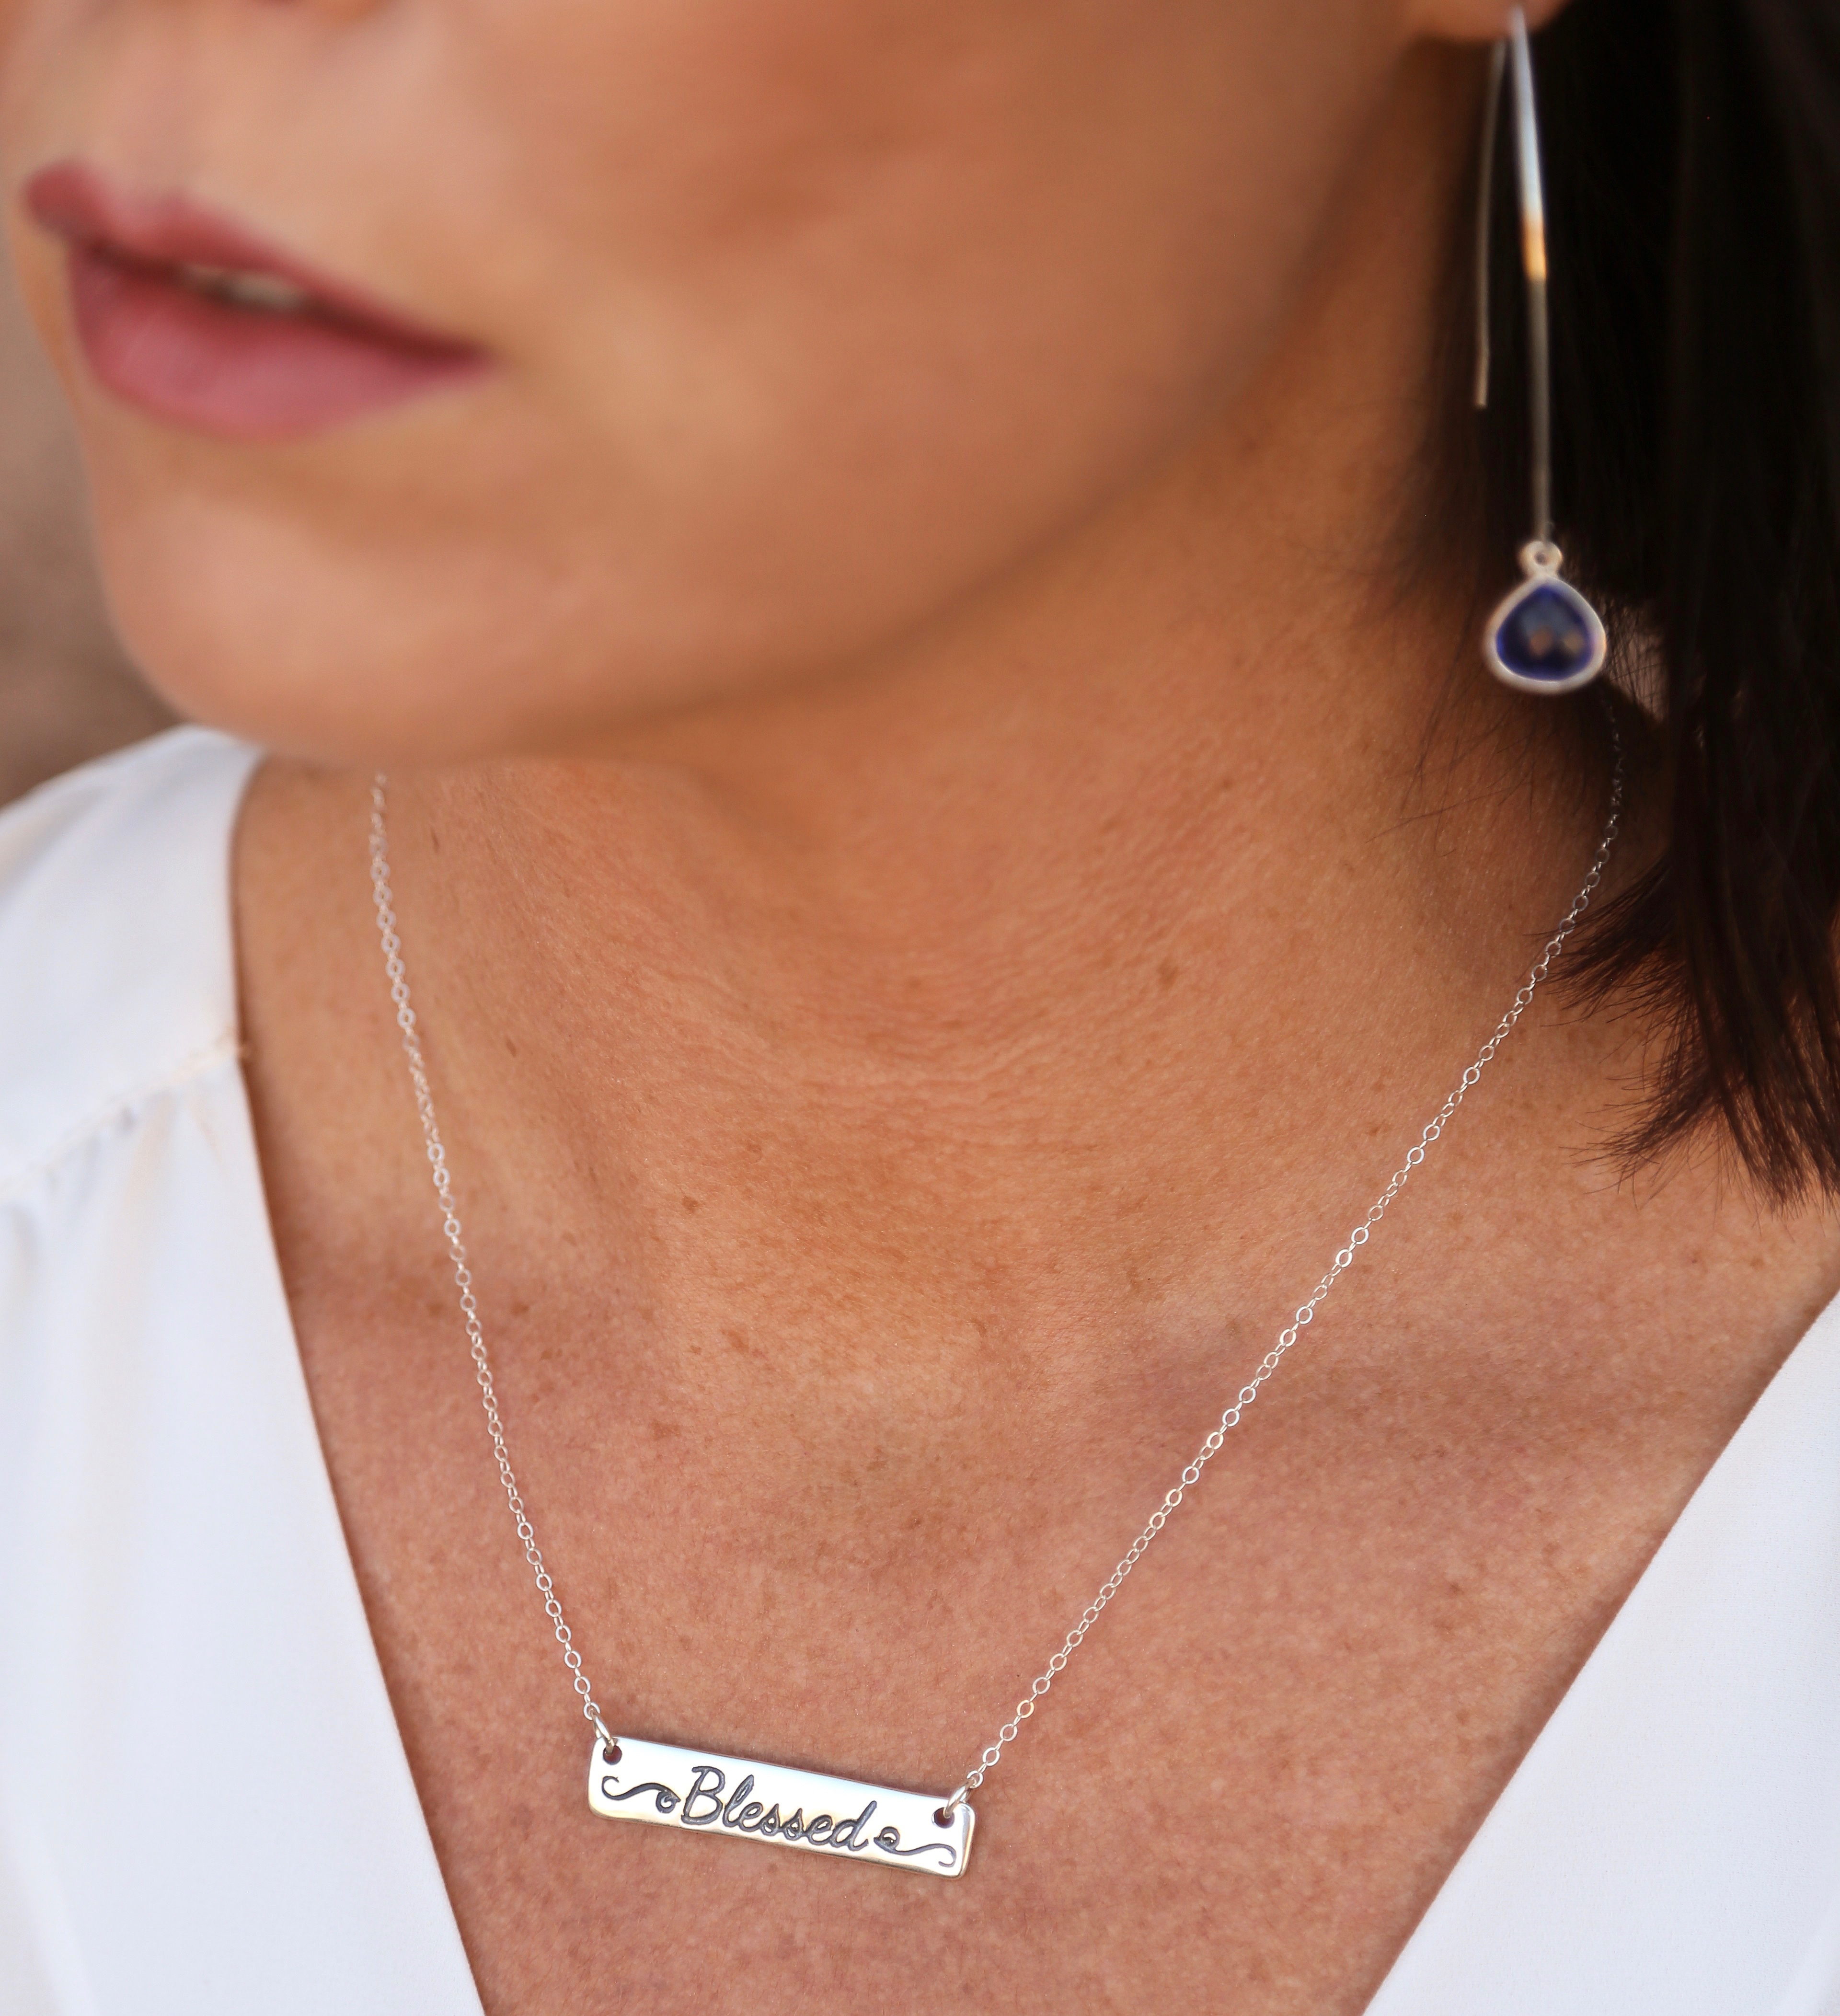 Blessed Christian Sterling Silver Bar Necklace Jewelry Gift Idea For Women